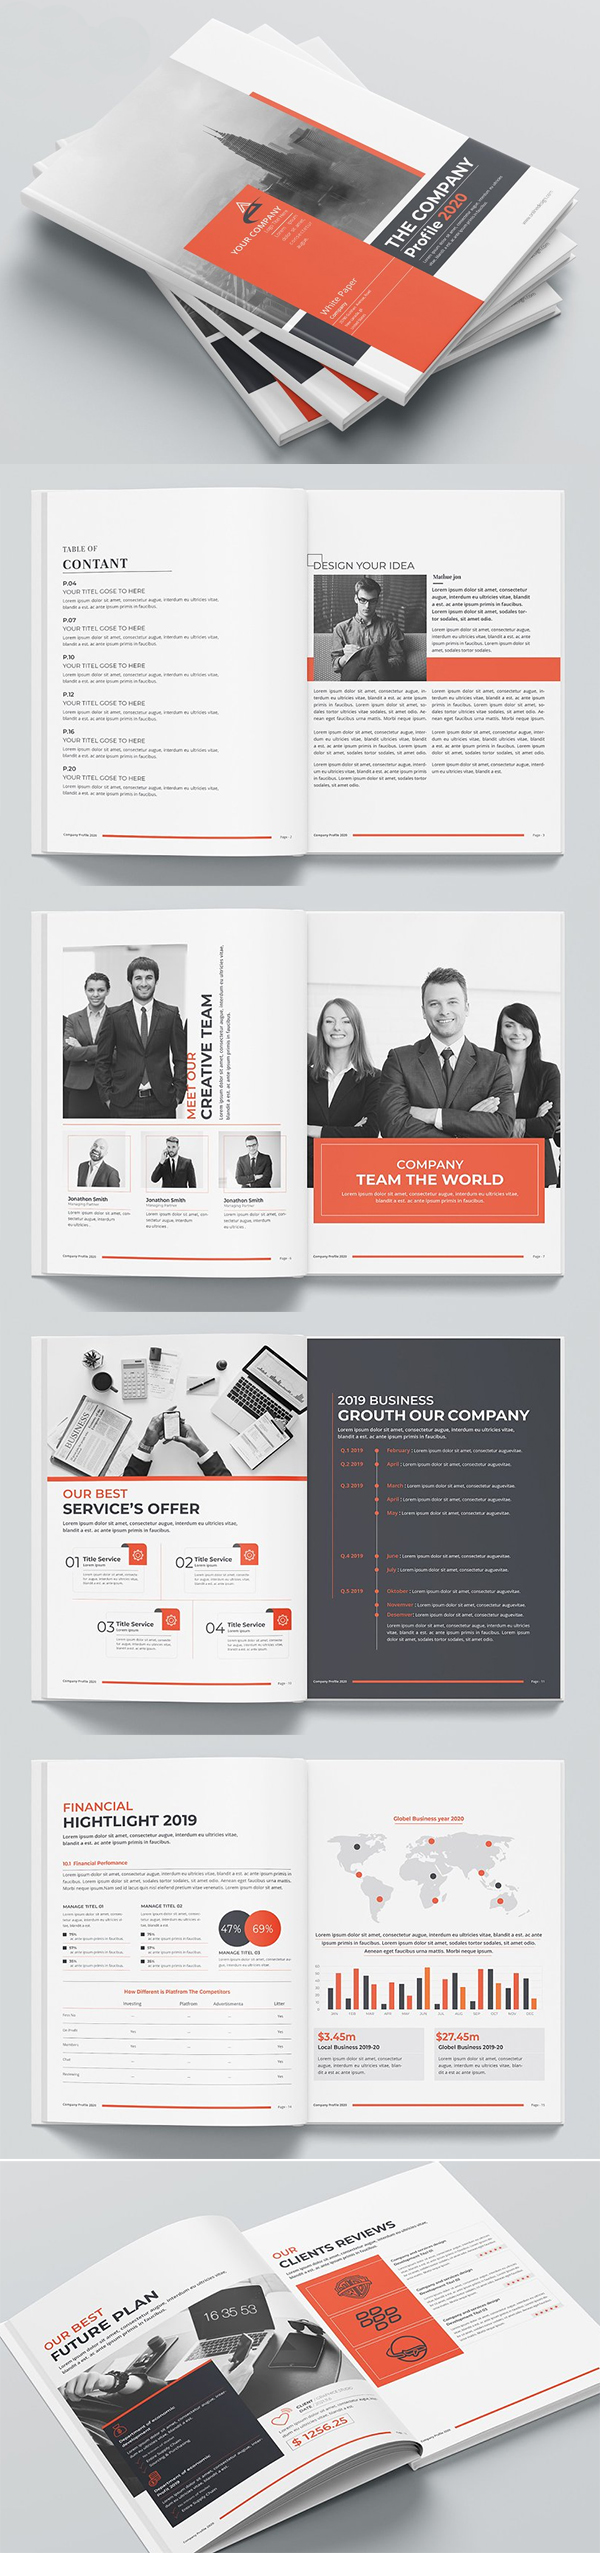 Company Profile Word Template